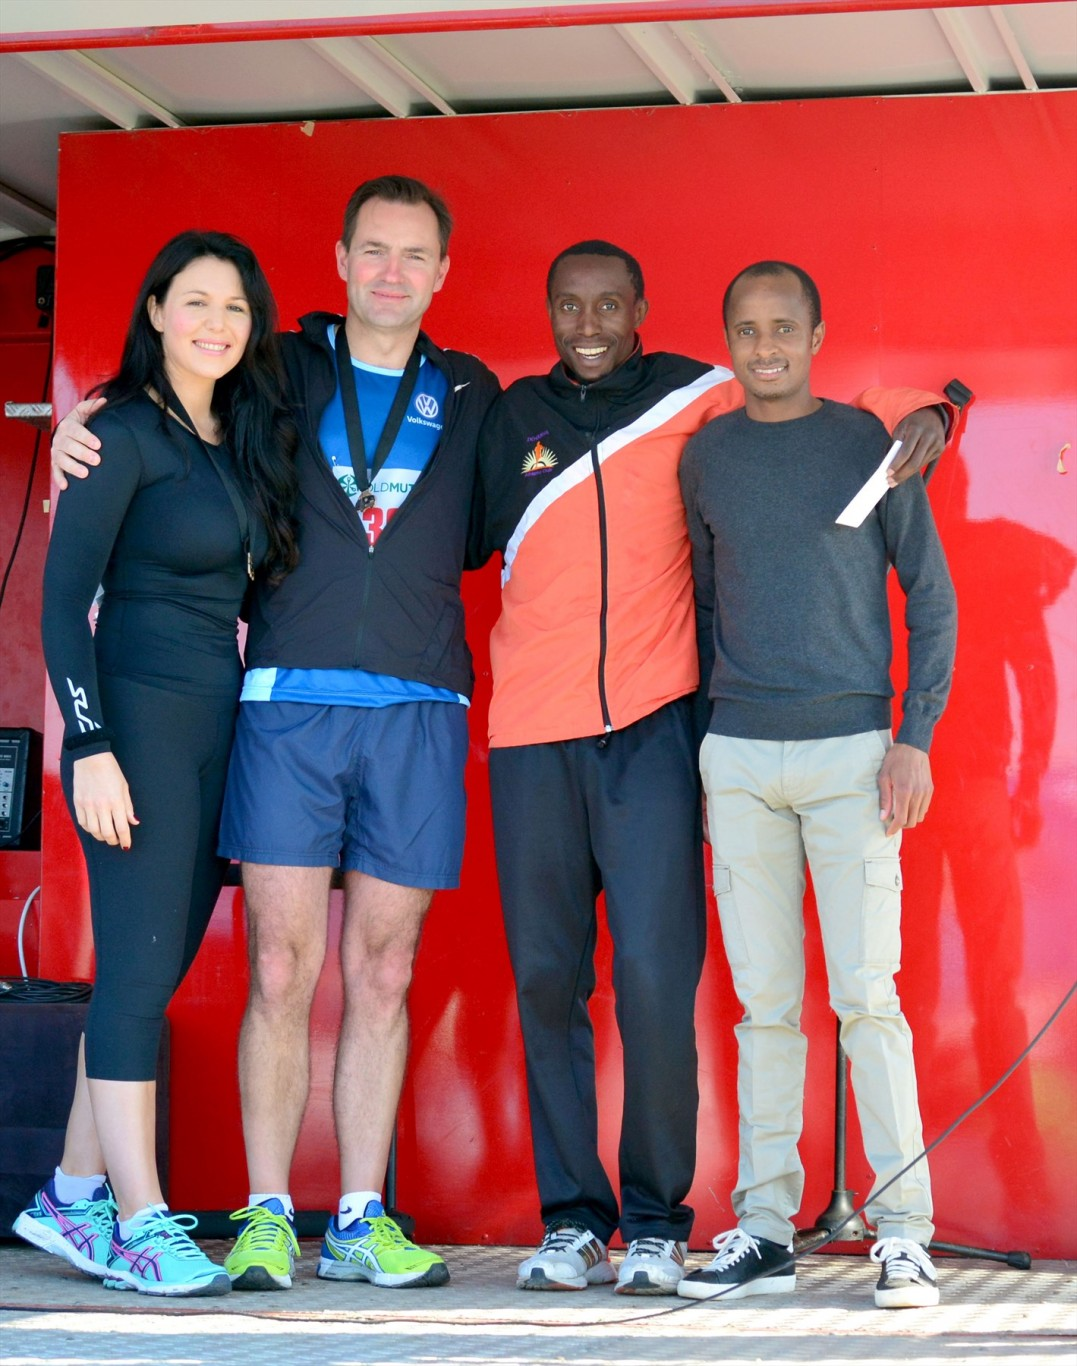 From L-R: Wendy Schaefer, who ran with her husband, Volkswagen Group South Africa Chairman and Managing Director, Thomas Schaefer with the winner of the Men's 10km race Amos Nyongo and SA Rio Olympics participant Lusapho April.